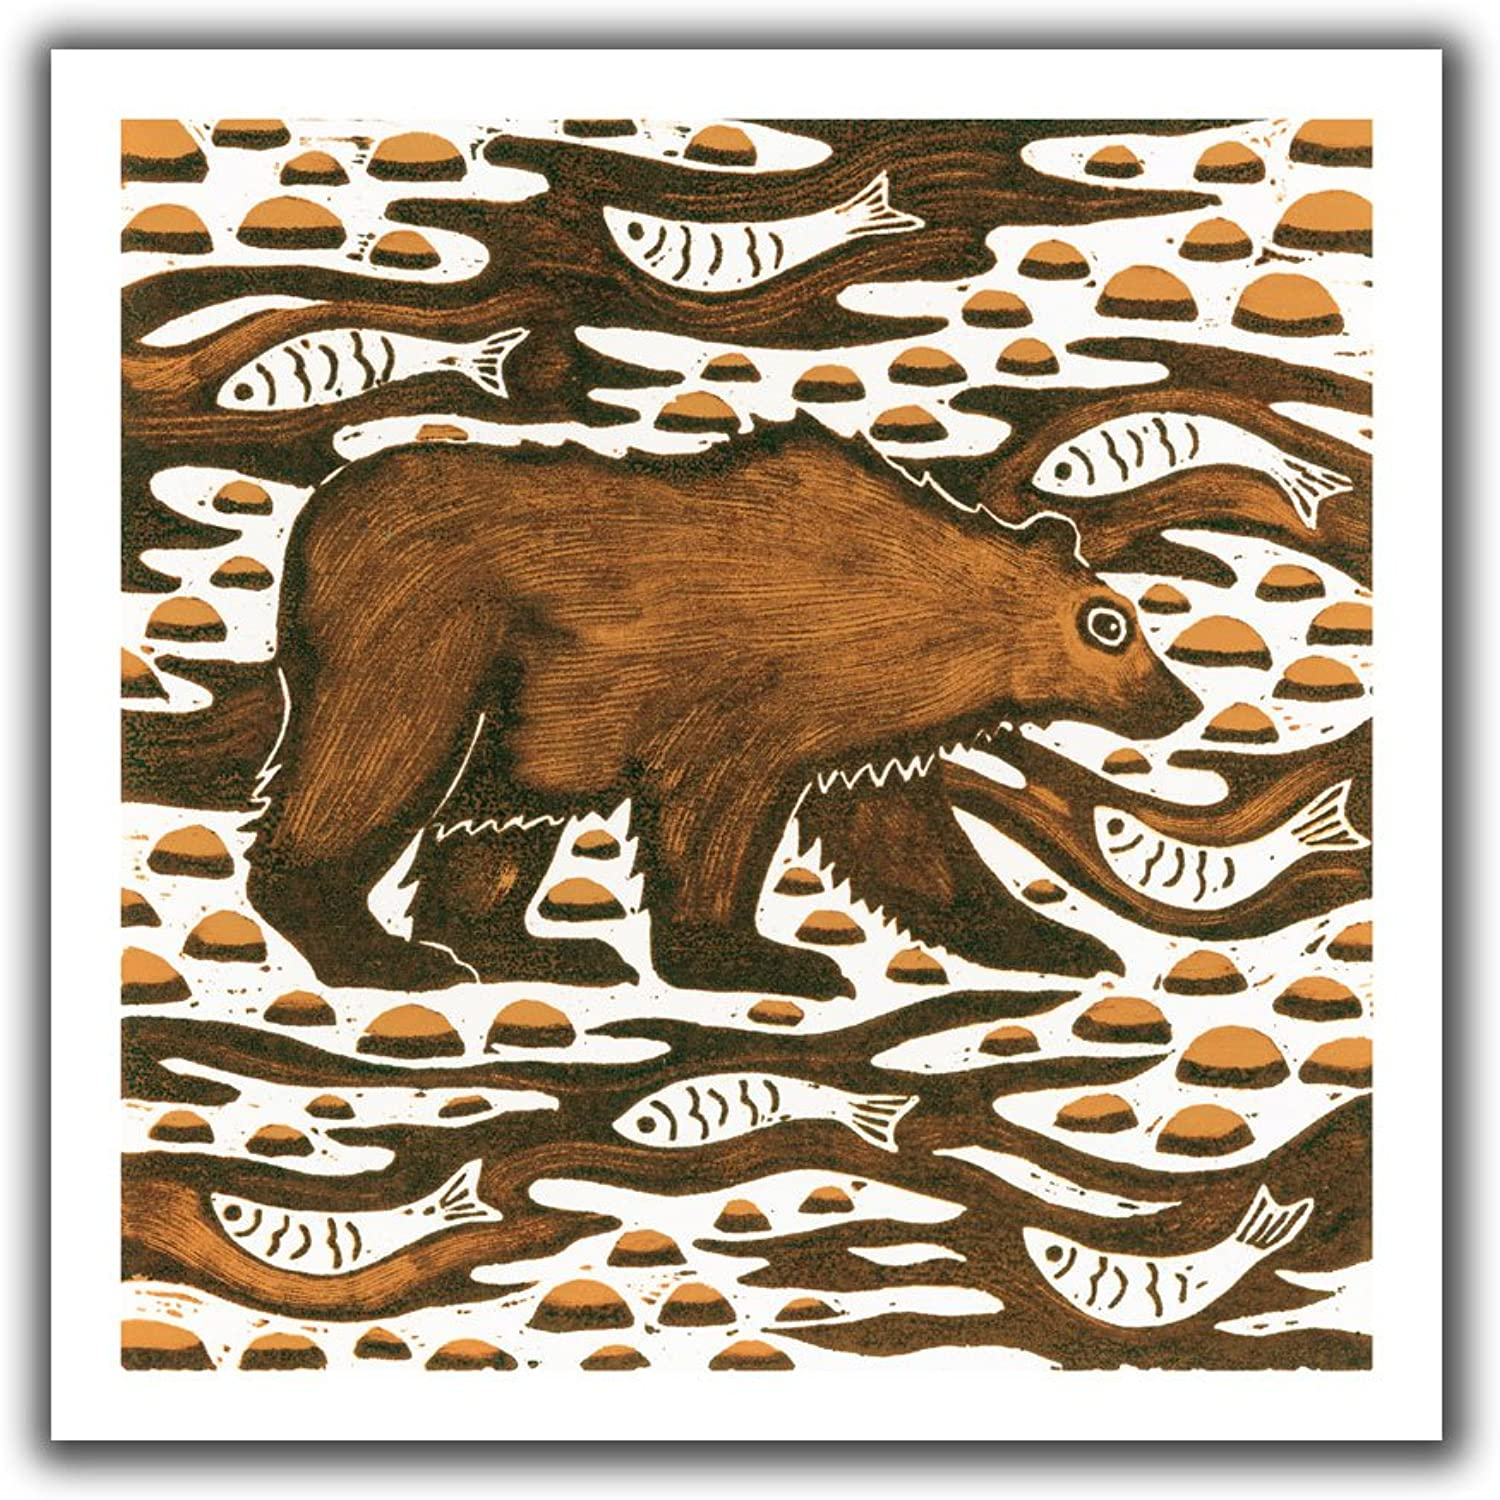 Art Wall Nat Morley Fishing Bear Unwrapped Flat Canvas Artwork, 18 by 22Inch